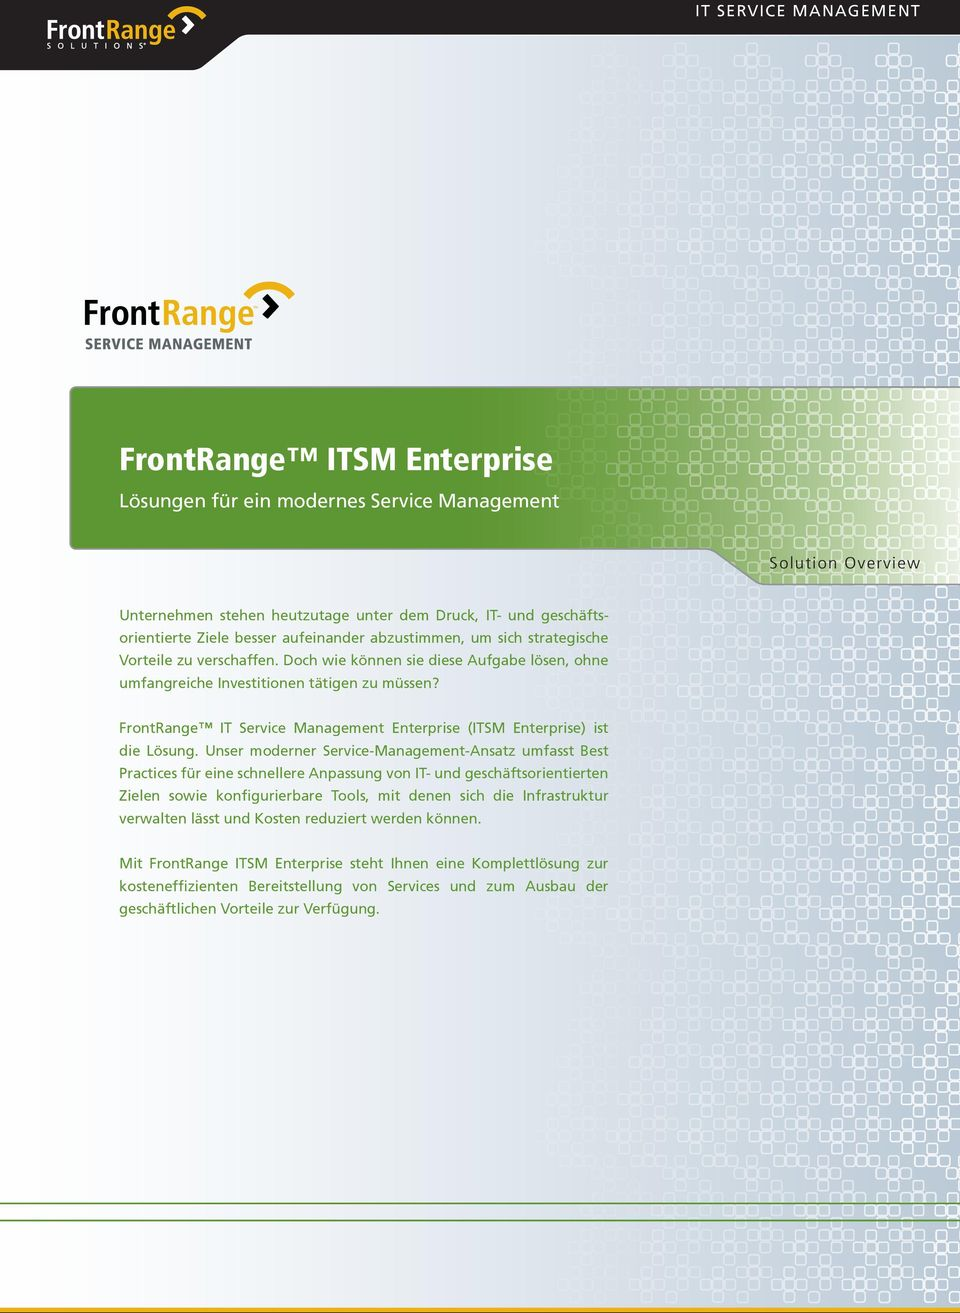 FrontRange IT Service Management Enterprise (ITSM Enterprise) ist die Lösung.